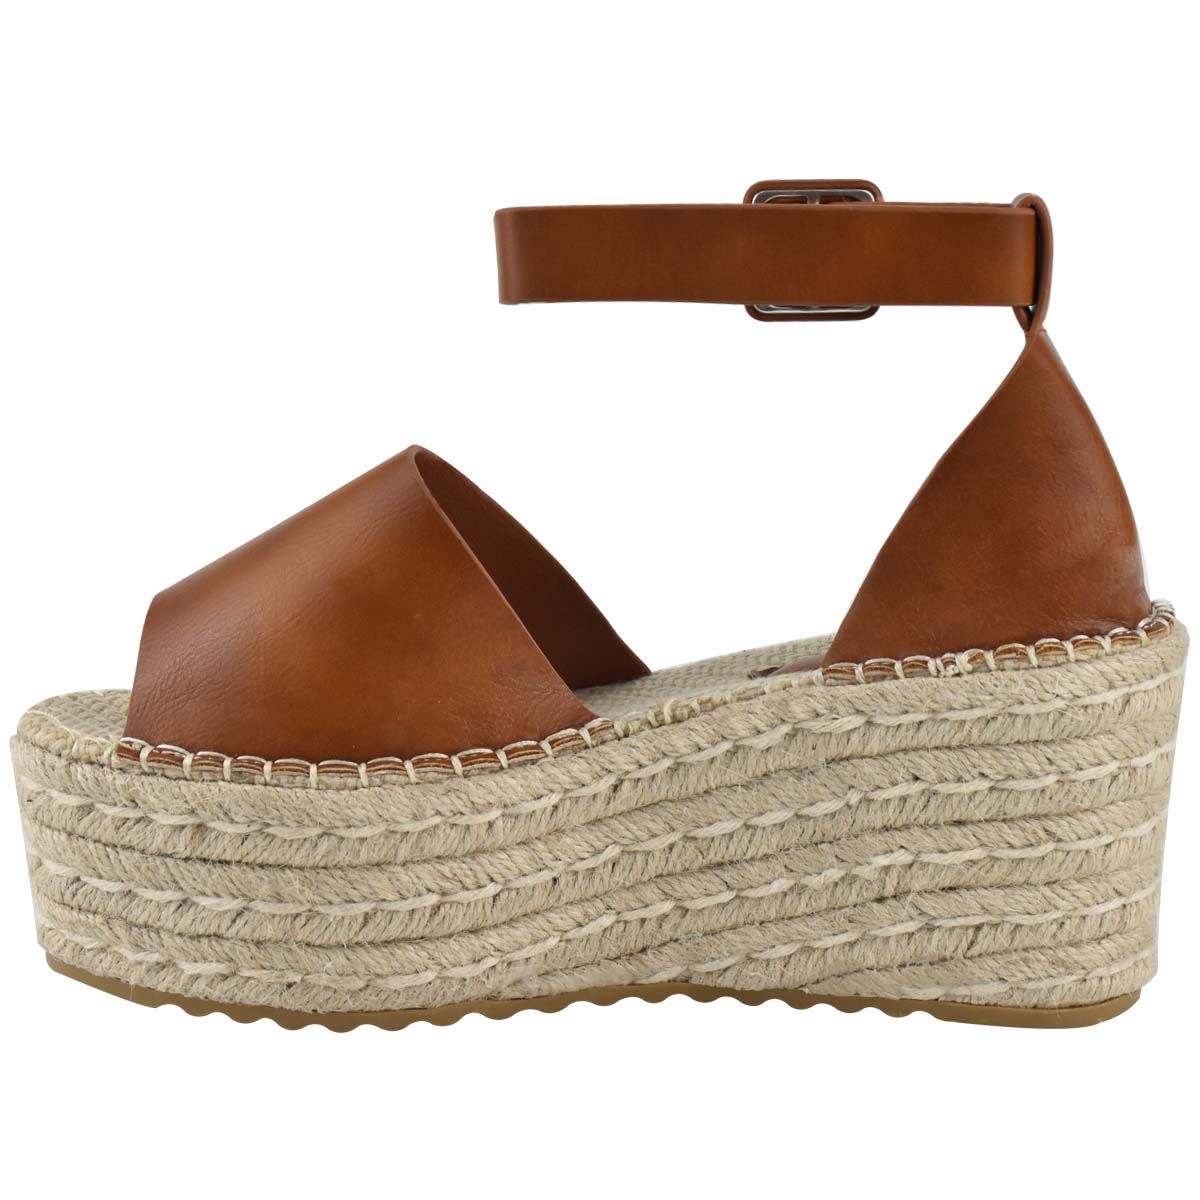 Womens-Flatform-Platform-High-Wedge-Black-Tan-Faux-Leather-Summer-Sandals-Size thumbnail 10